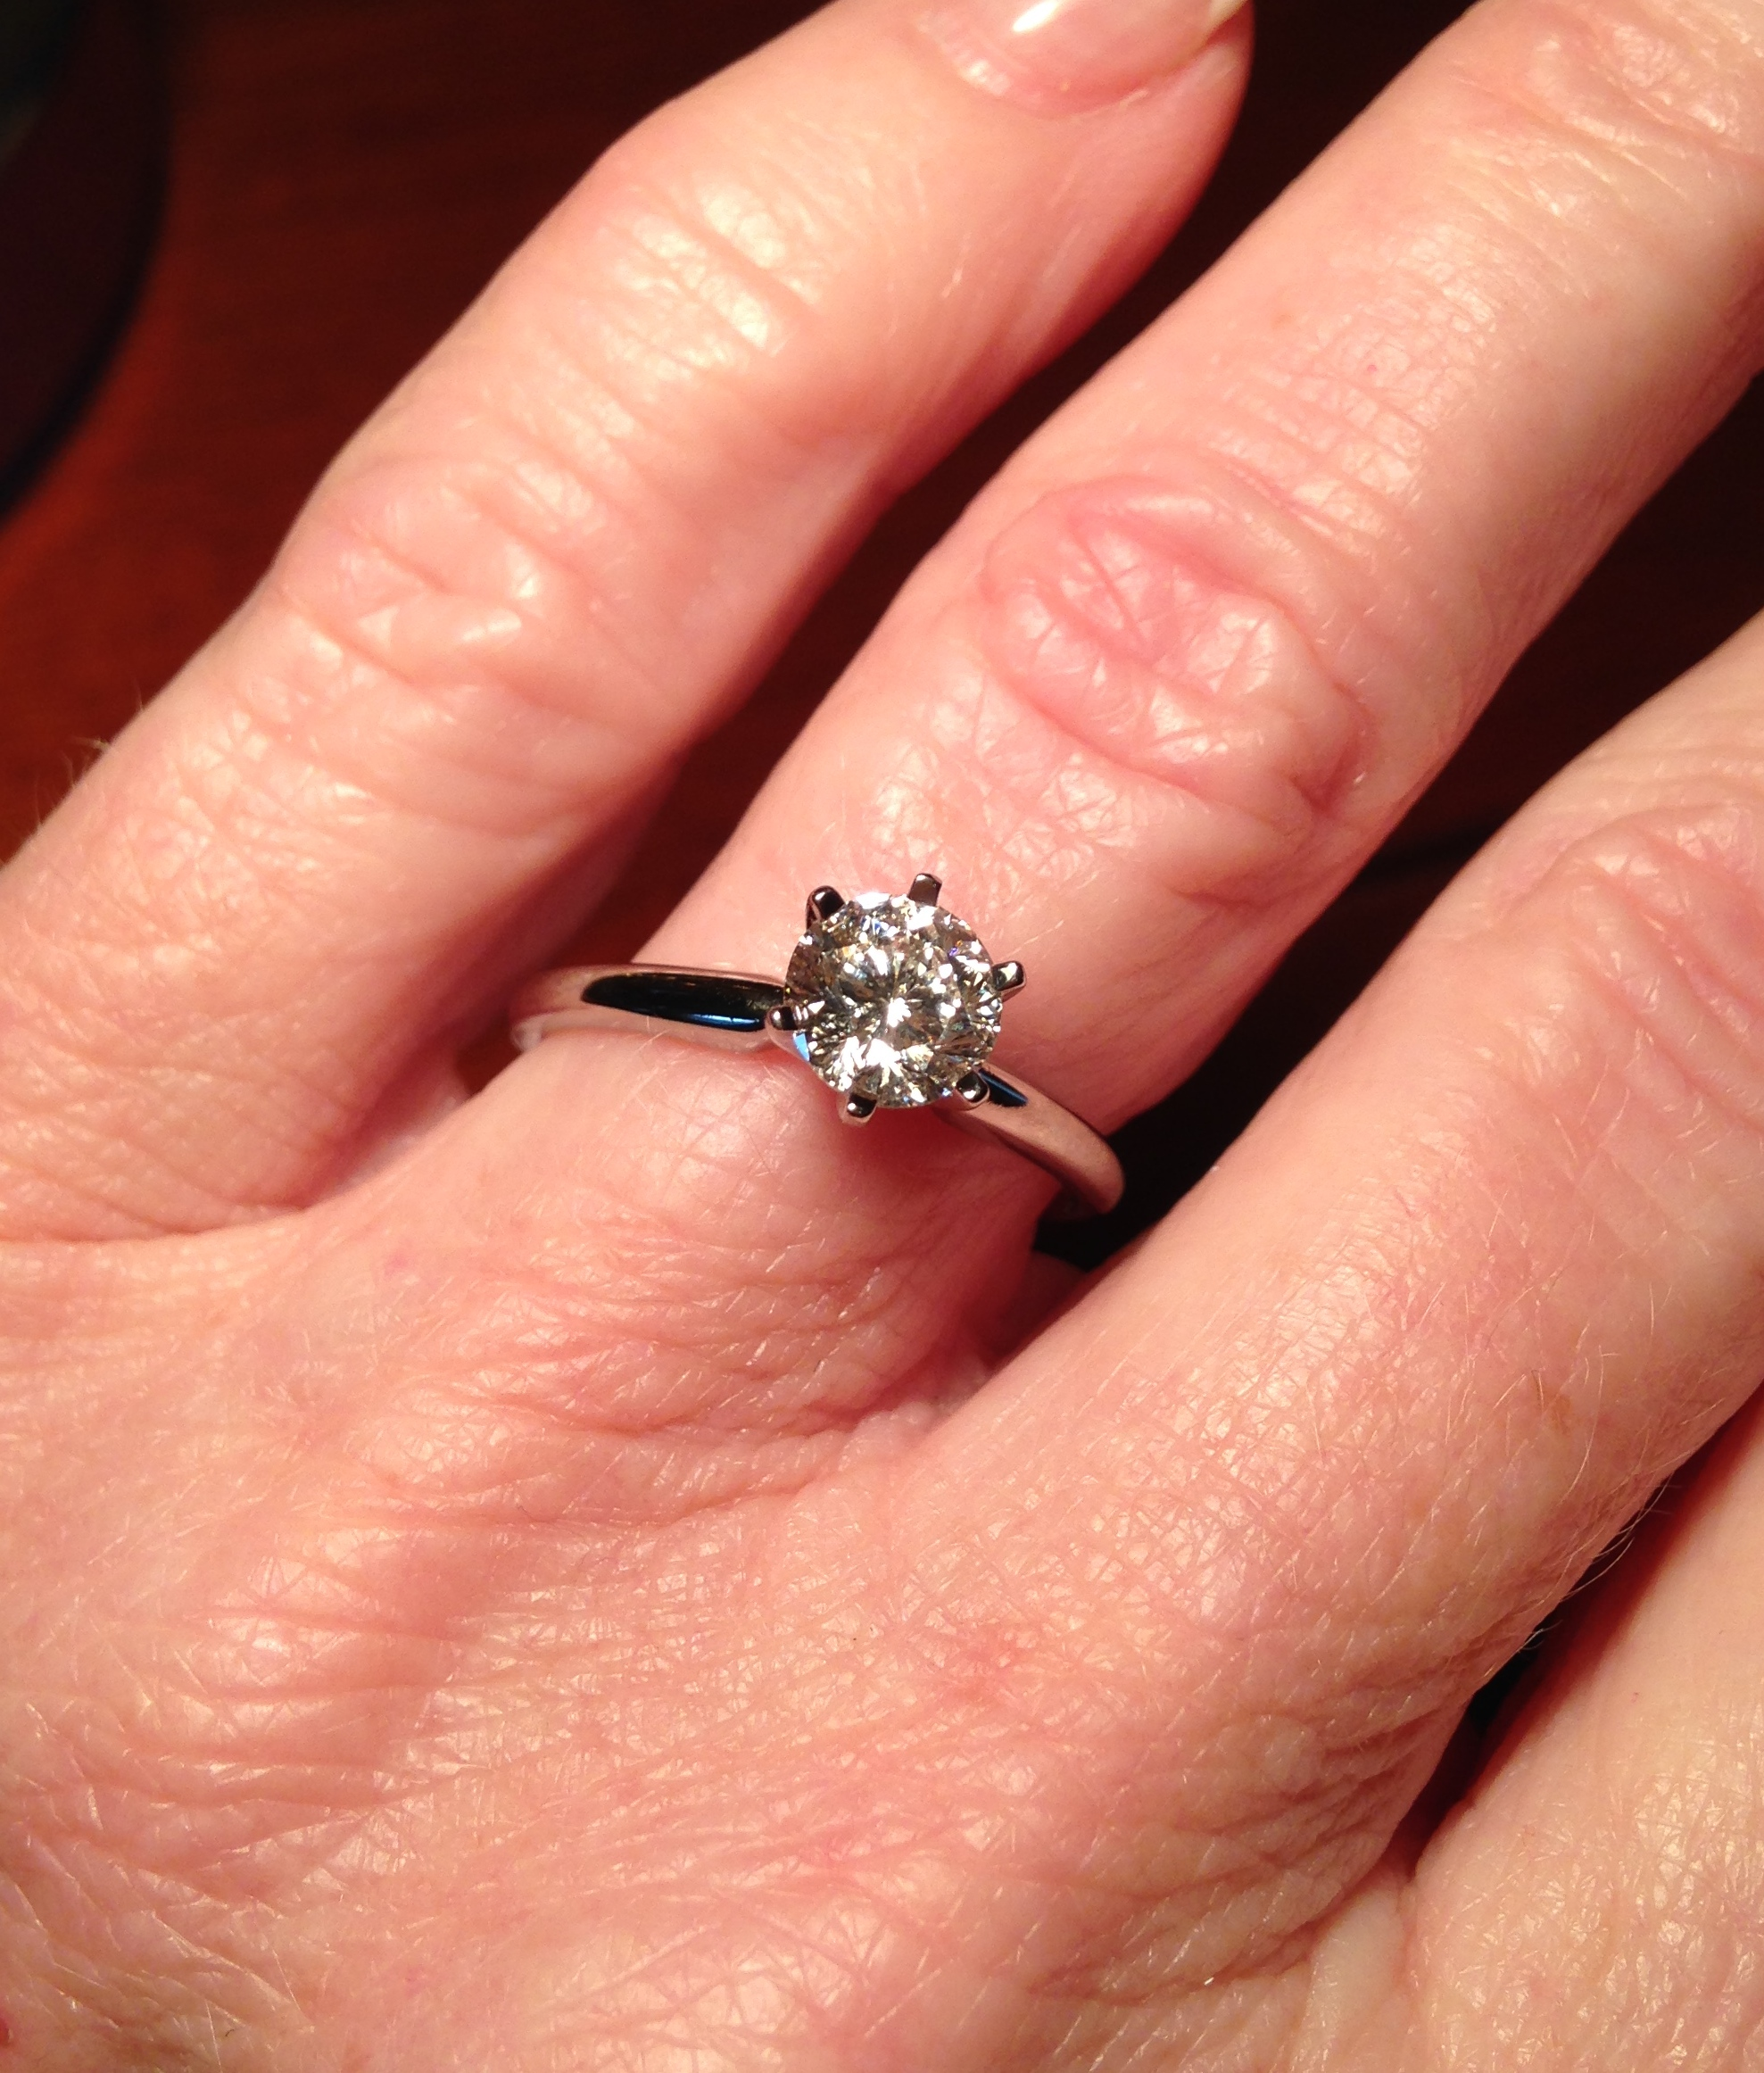 Helzberg Radiant Star 1ct Solitaire Diamond Engagement Ring 14k White Gold I Do Now I Don T